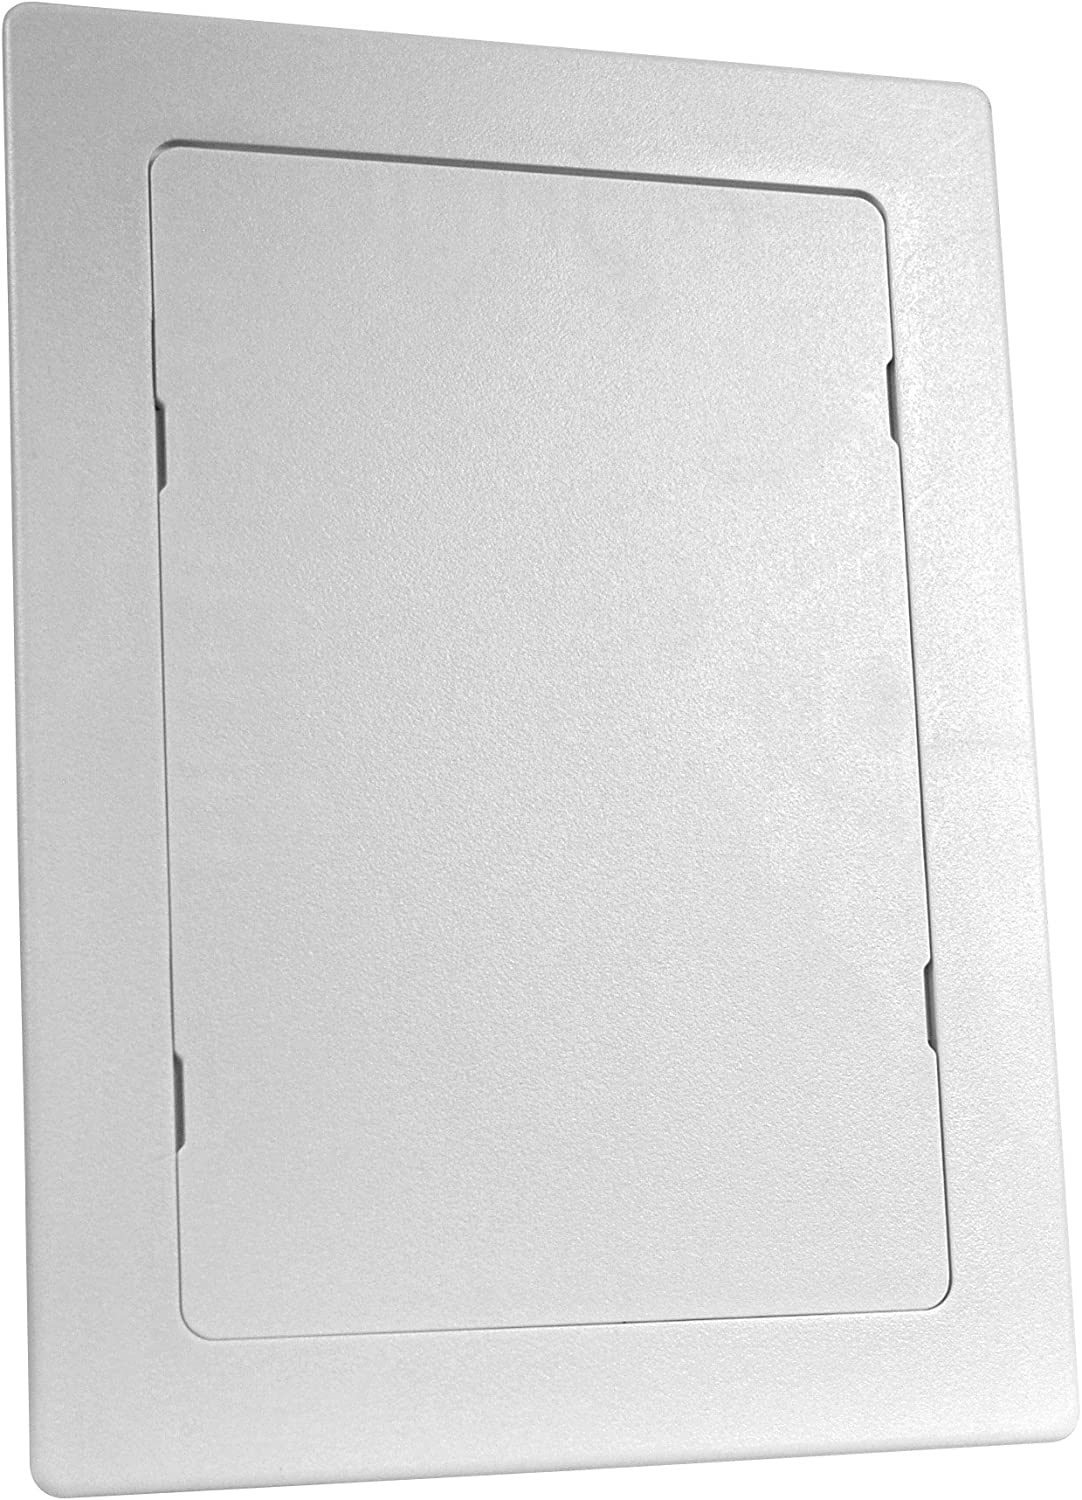 Oatey 34055 Plastic Access Panel Pack of 2 6-Inch by 9-Inch